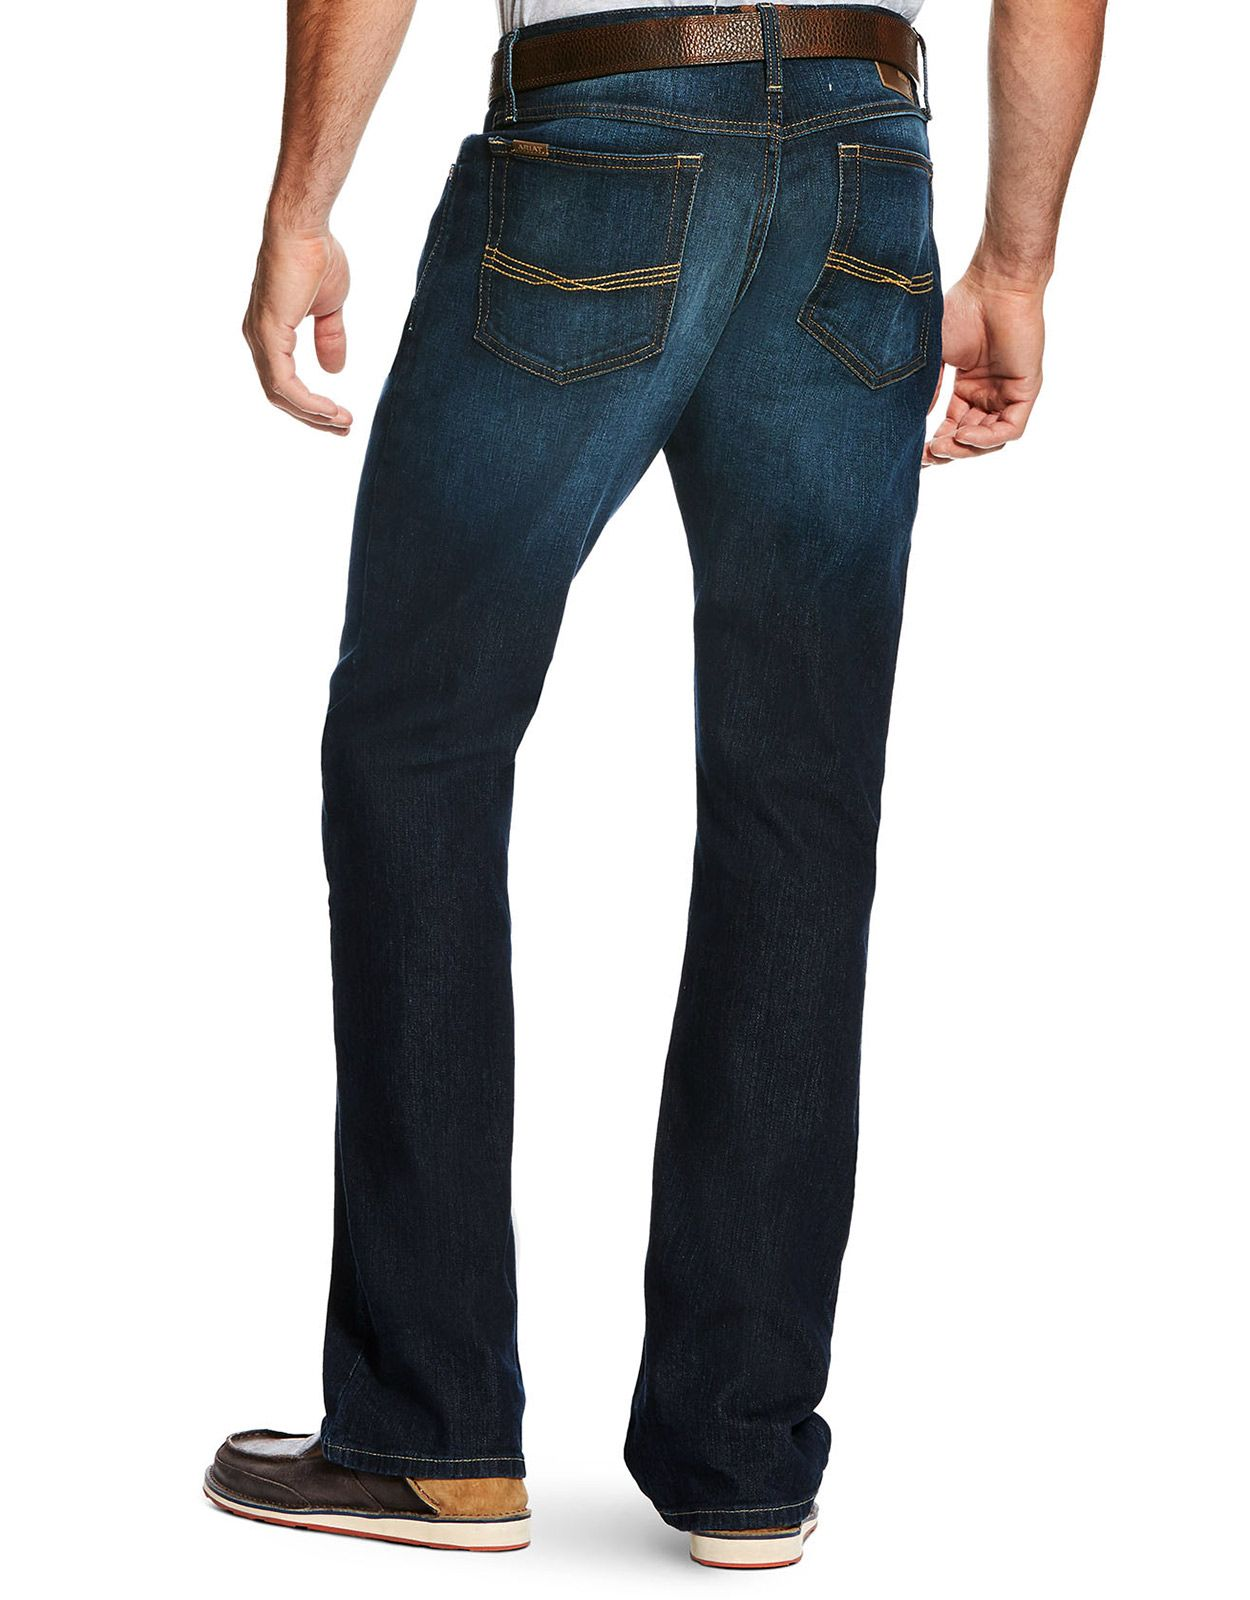 Ariat Men's M5 Legacy Stretch Low Rise Slim Fit Straight Leg Jeans - Durham